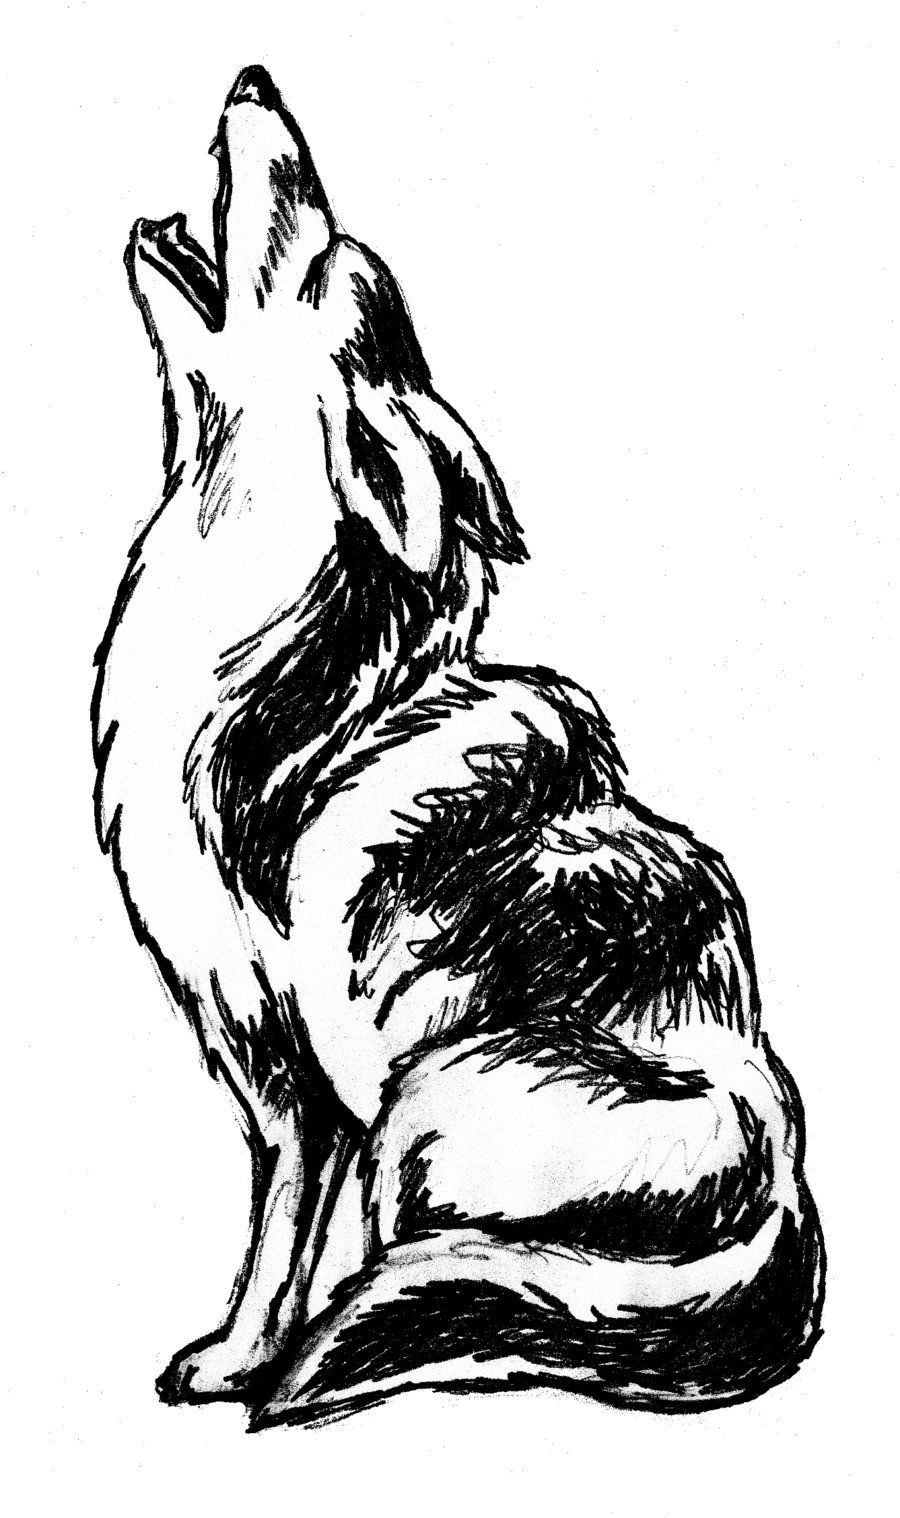 Howling clip art by. Coyote clipart desert coyote